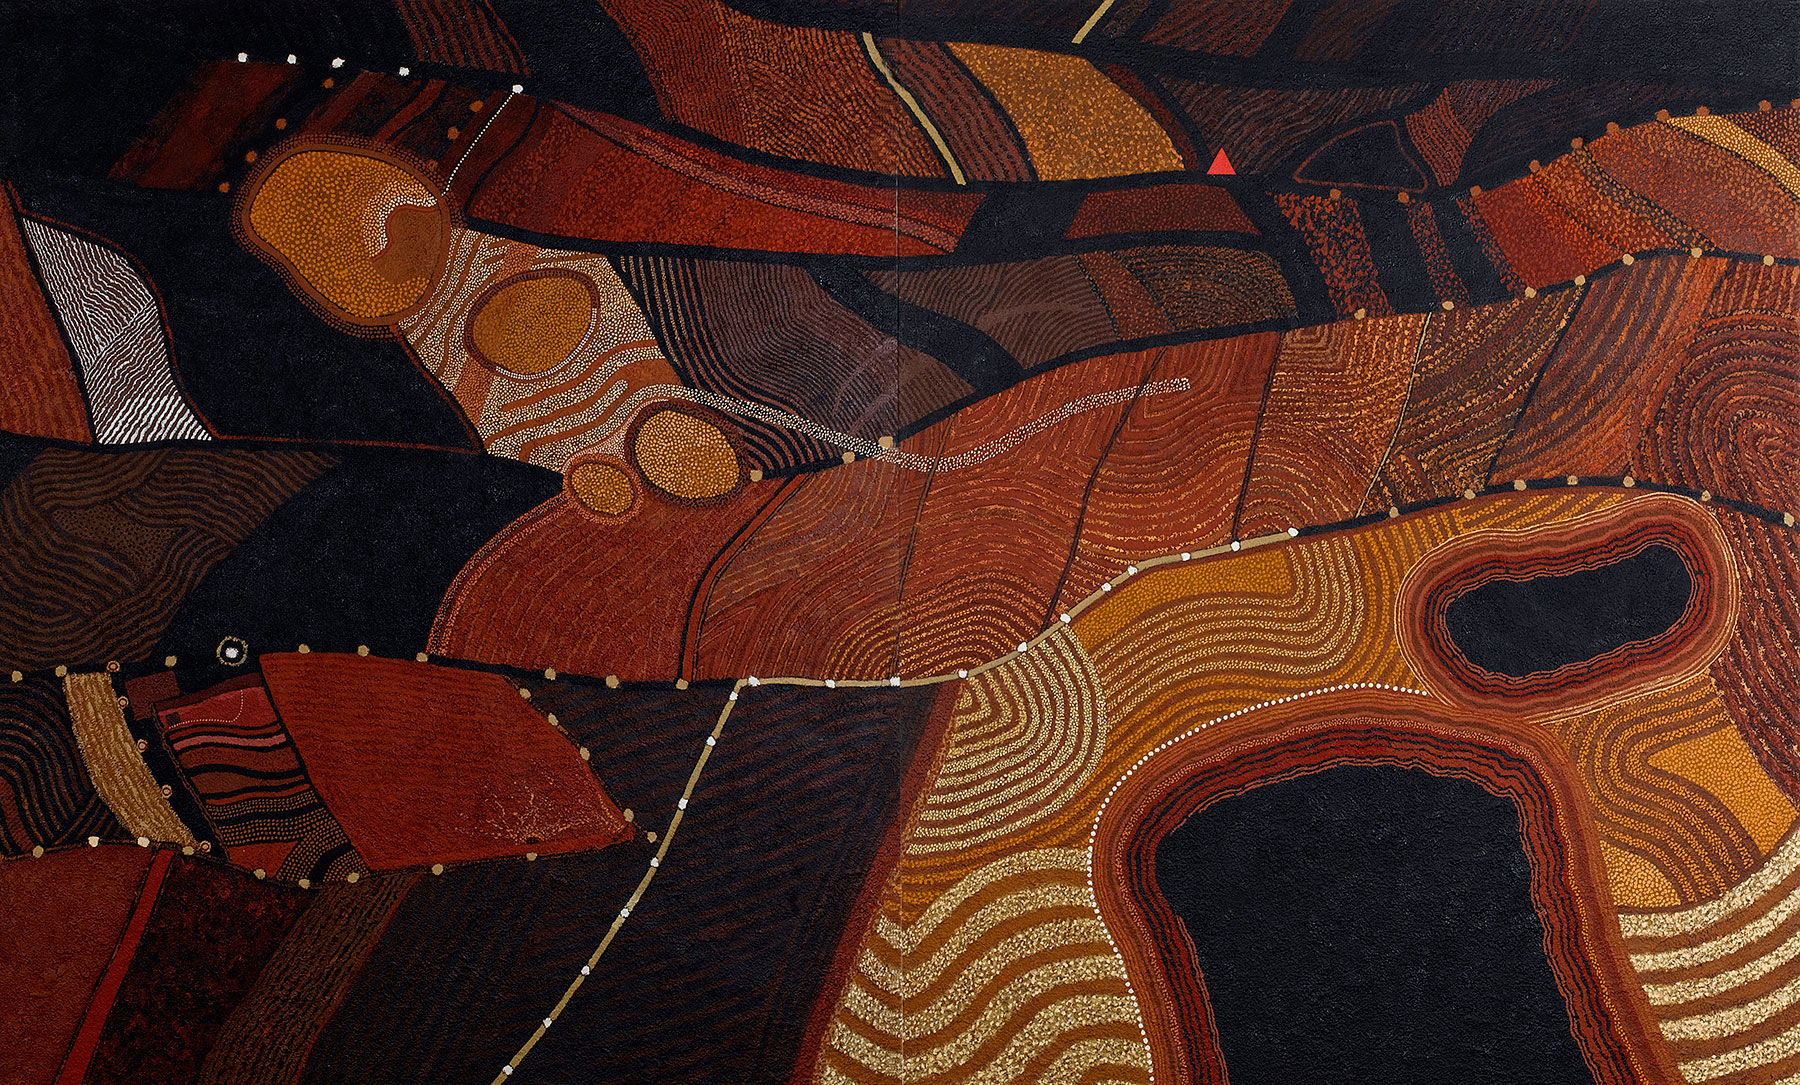 Layered Land, 2002, 232 x 328 cm, oil on canvas